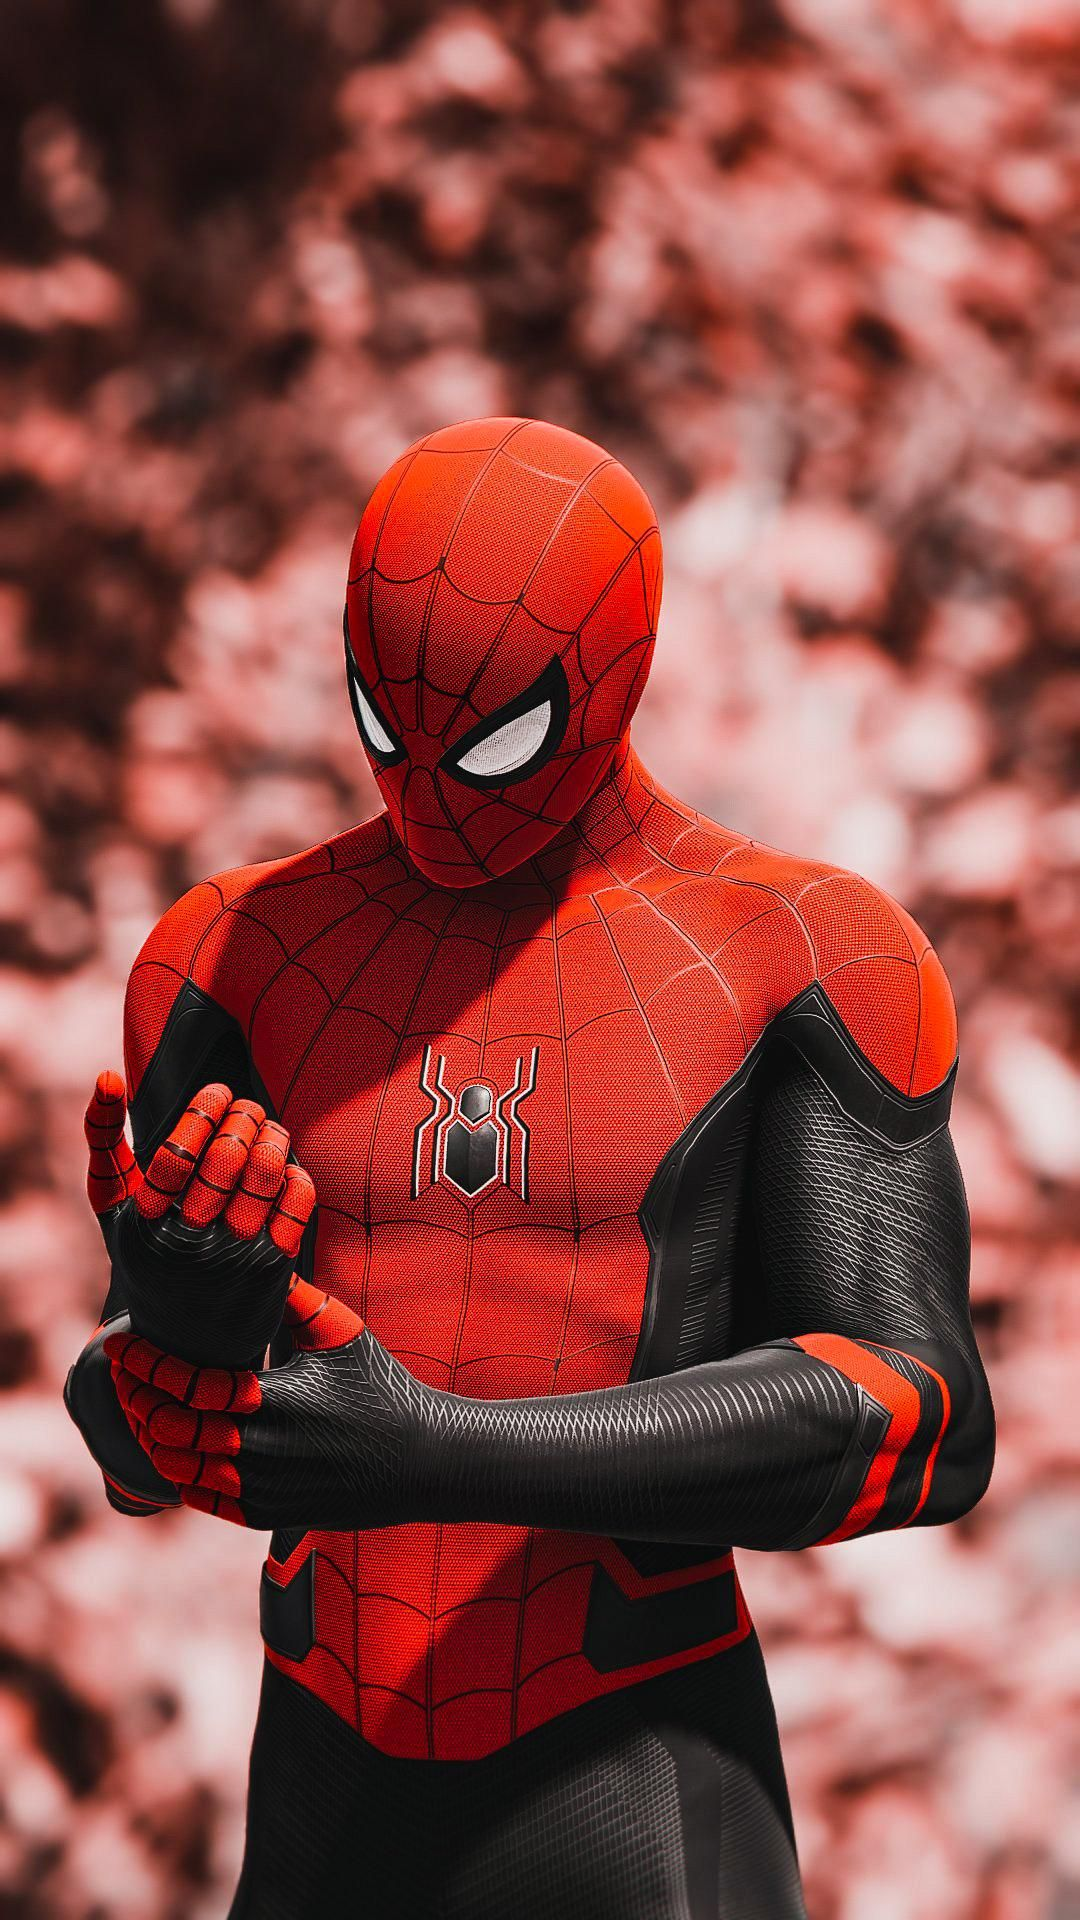 Spiderman Far From Home Suit Marvel Spiderman Art Spiderman Comic Spiderman Pictures